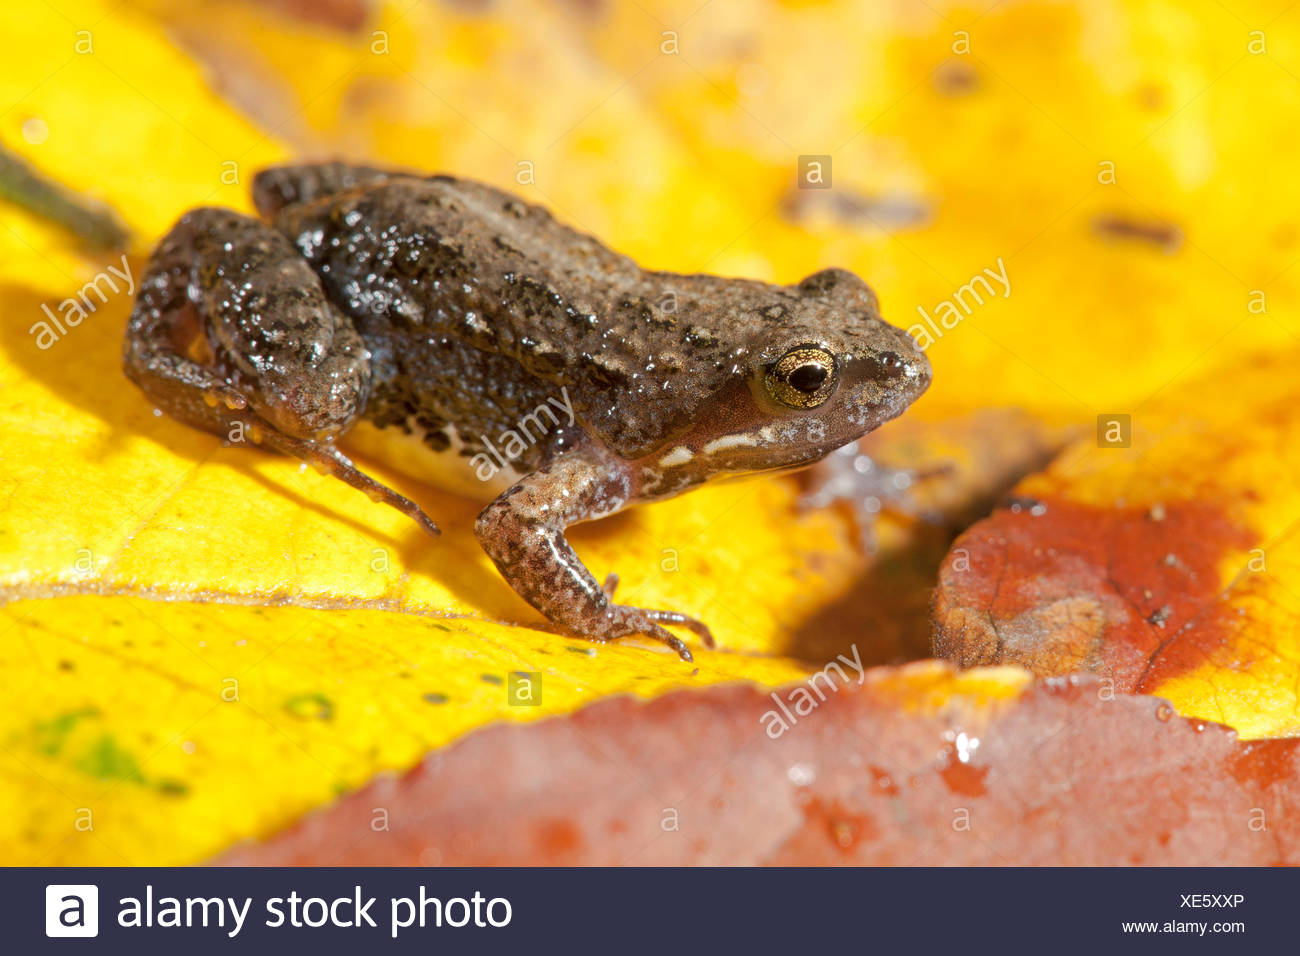 Small Dainty Frog - Stock Image